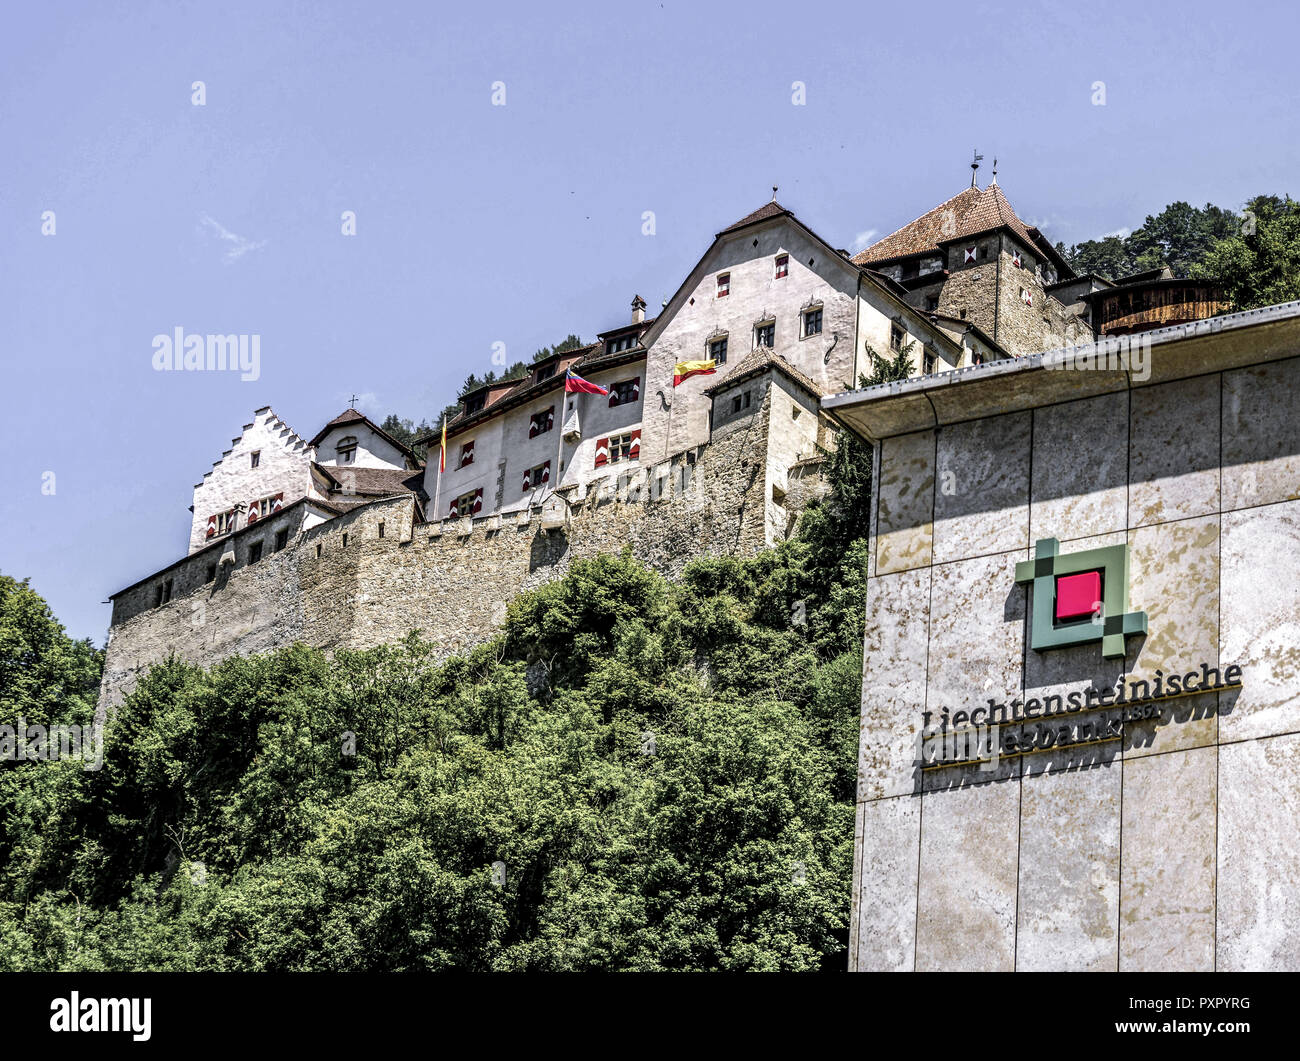 Bank building of Liechtensteinische Landesbank, Principality of Liechtenstein - Stock Image